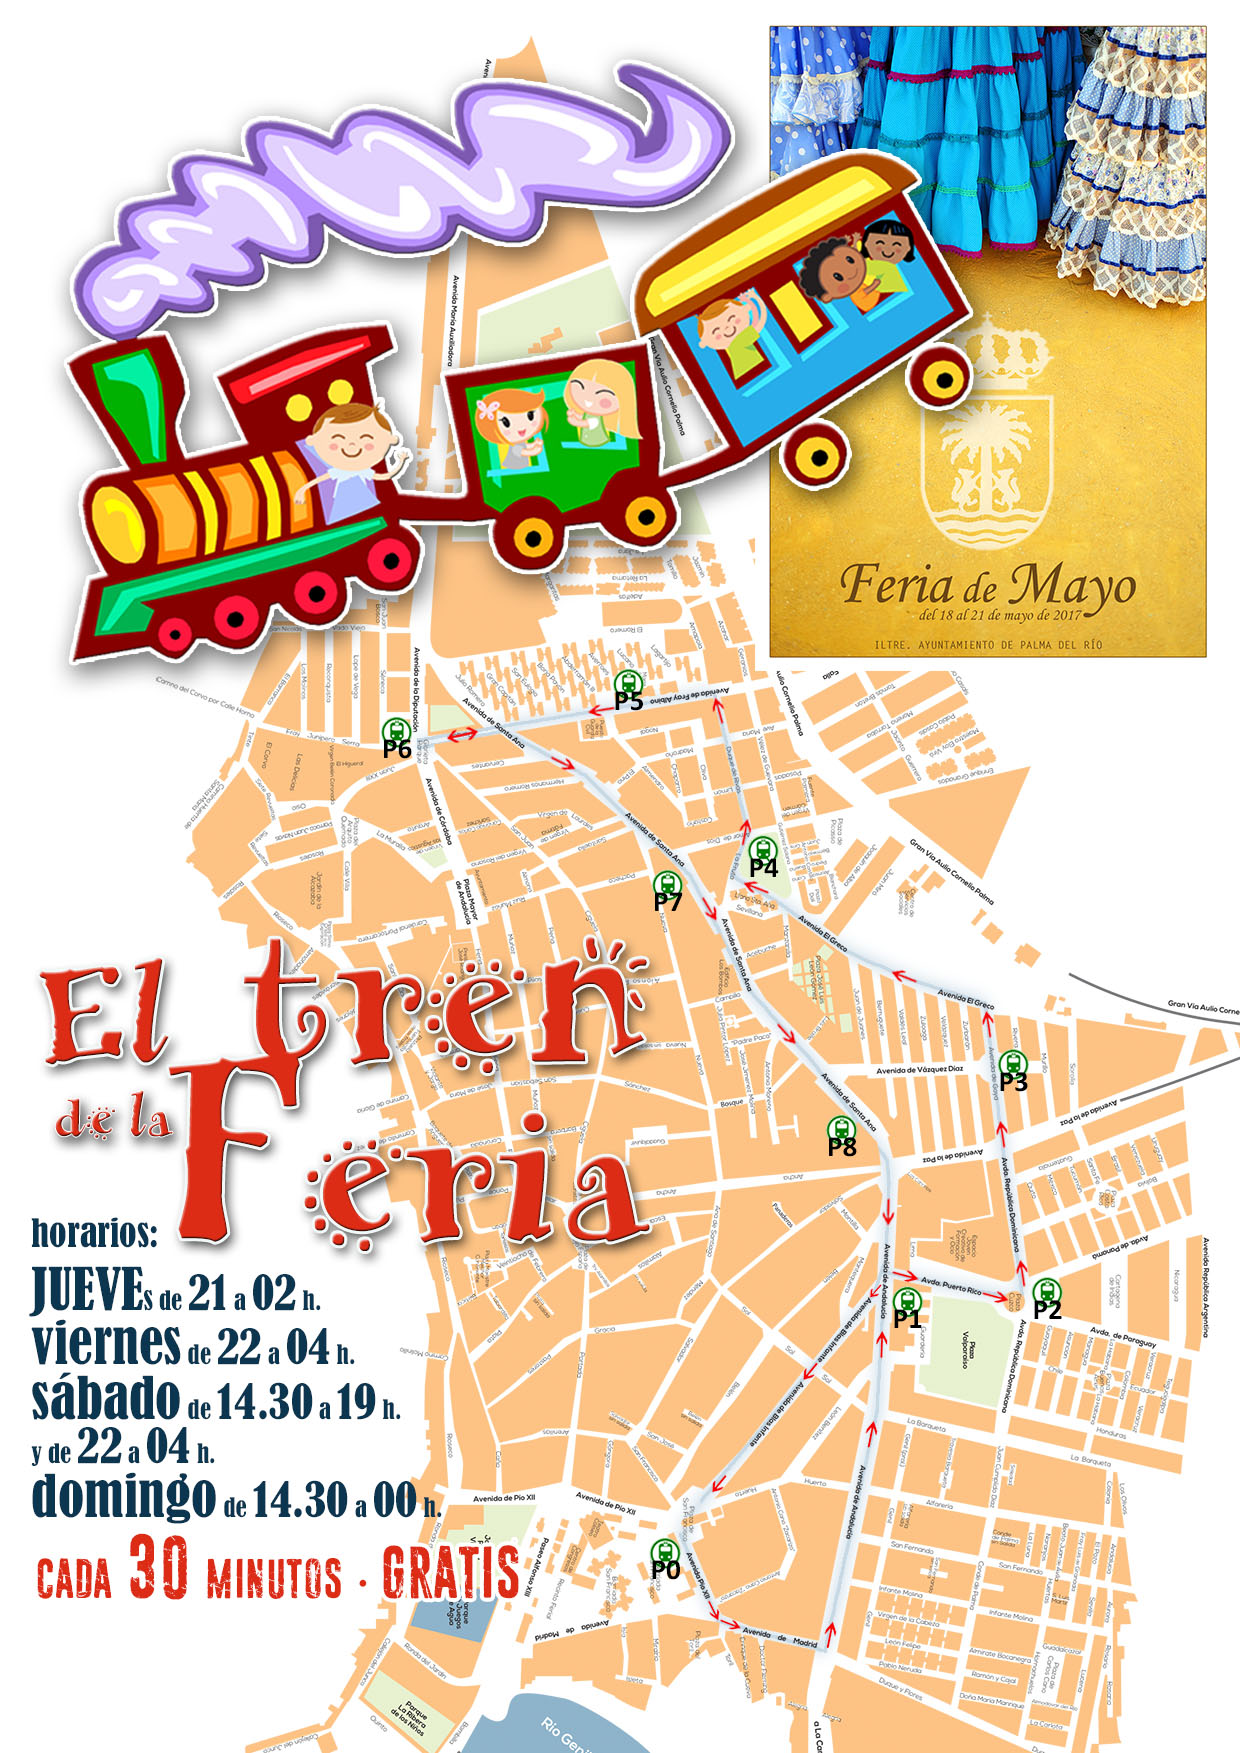 https://www.palmadelrio.es/sites/default/files/plano_tren_de_feria_2017.jpg